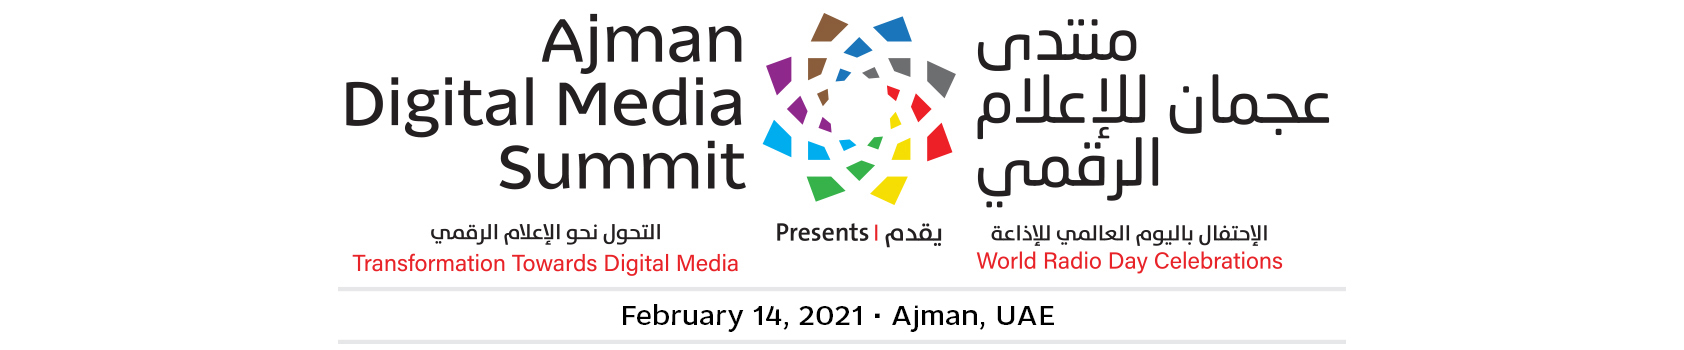 Ajman Digital Media Summit